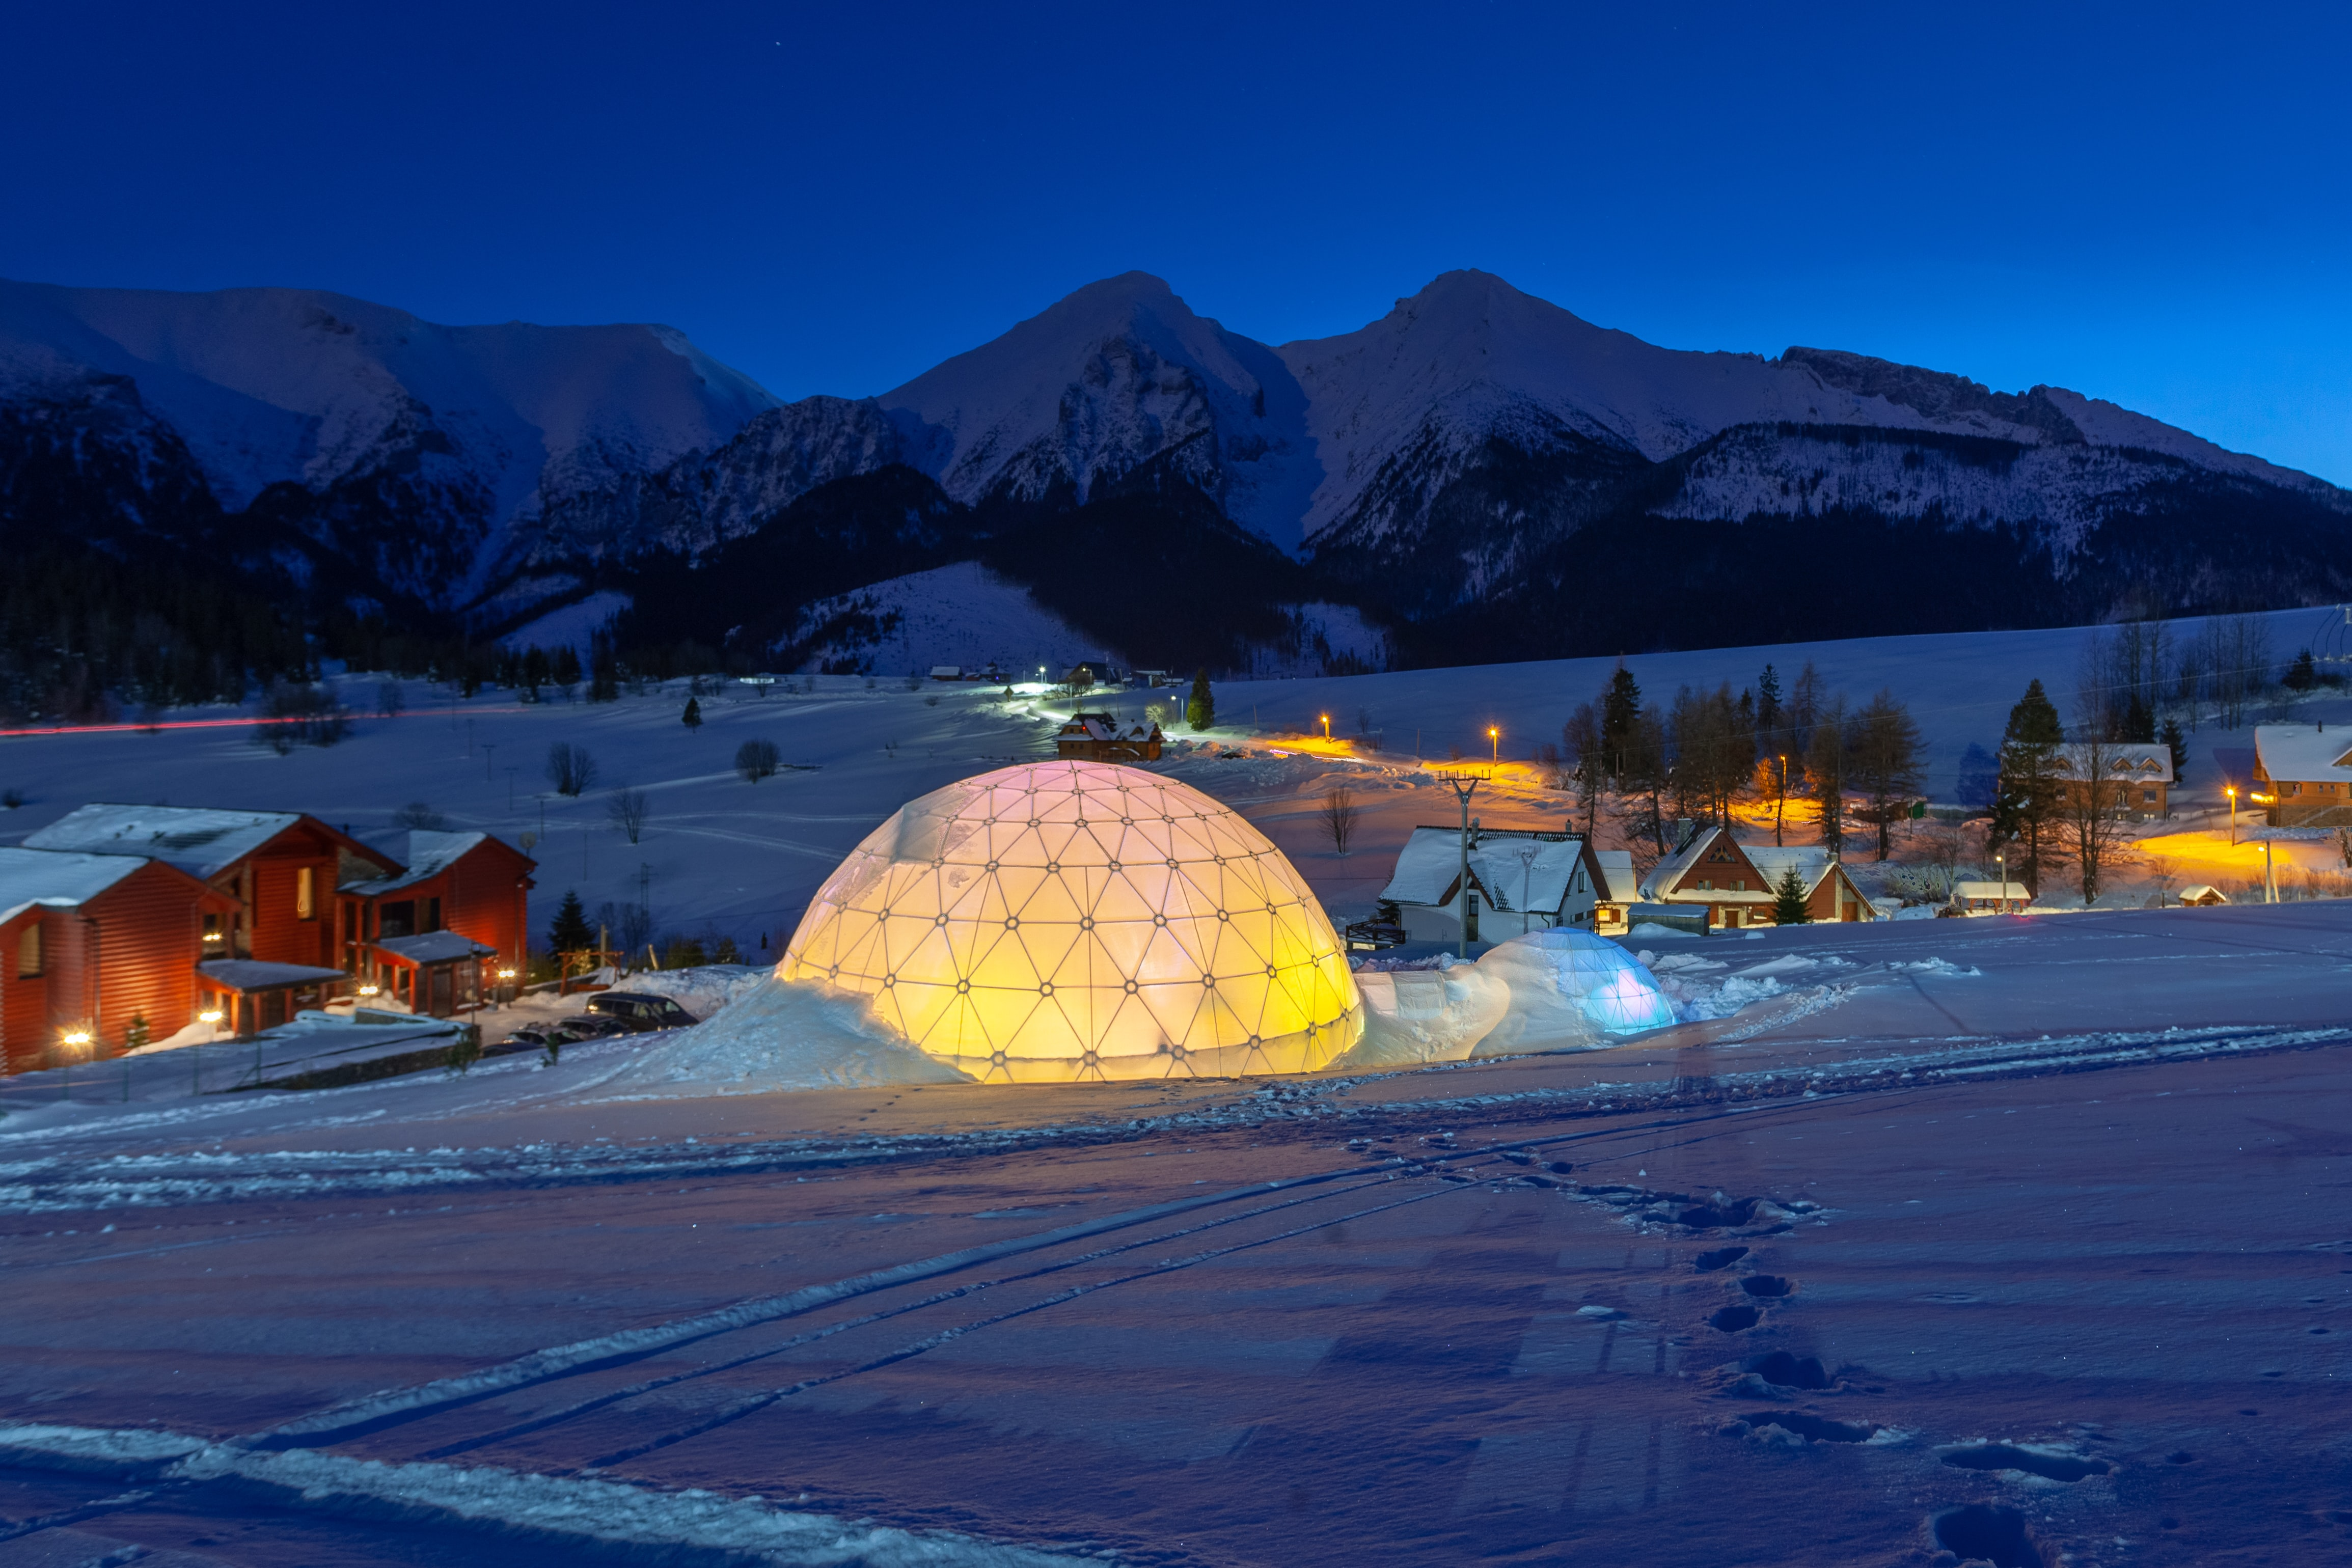 lighted dome building